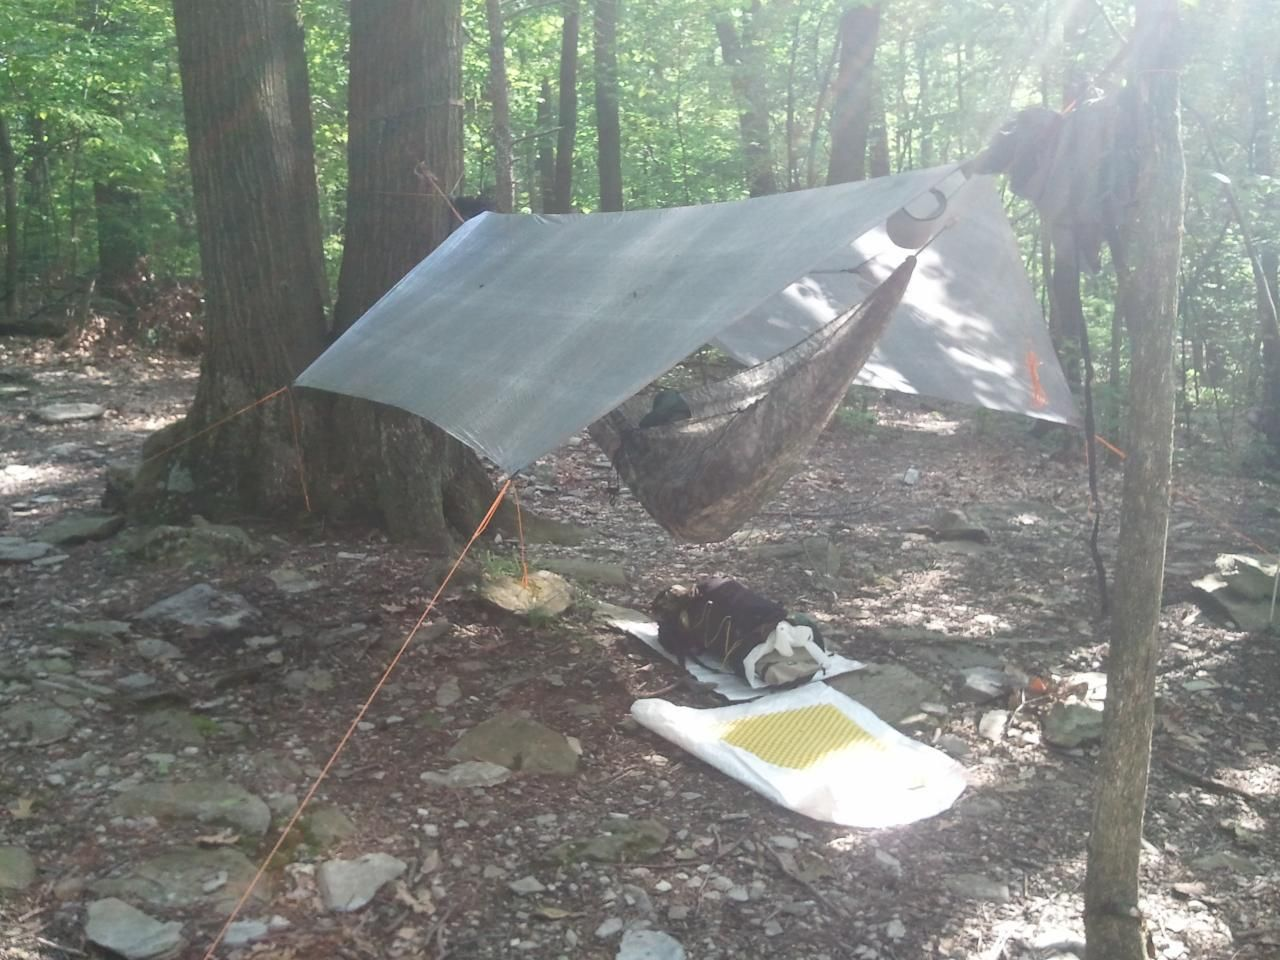 see what we re mend as the best hammock tarps for camping and backpacking in the wilderness  we demand lightweight and rugged gear that lasts  cuben fiber standard hex tarp 5 3oz by hammock gear      rh   pinterest